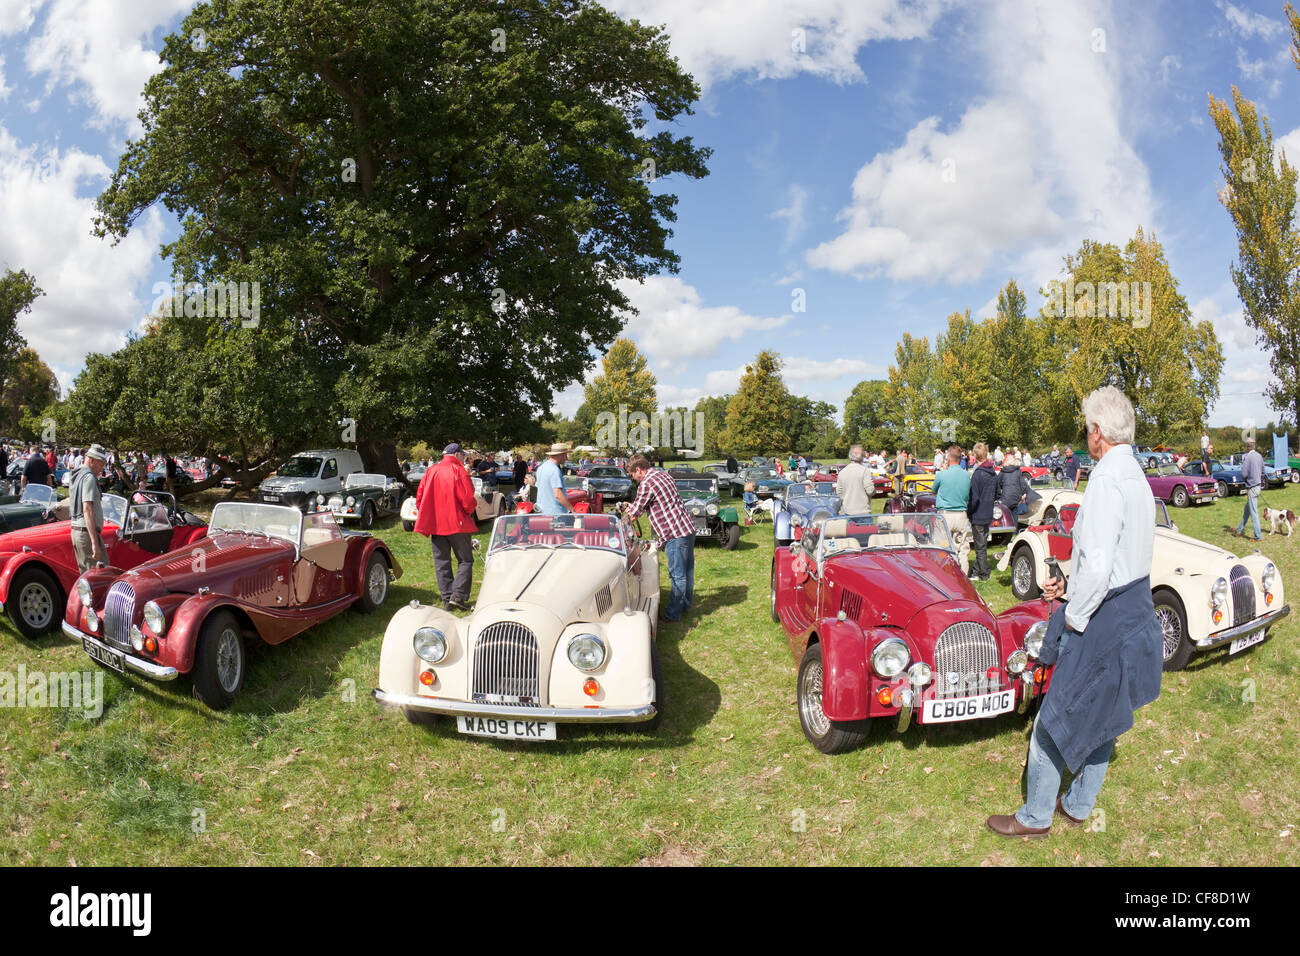 Front view of a row of Morgan sports car at the Thornfalcon Classic Car Show